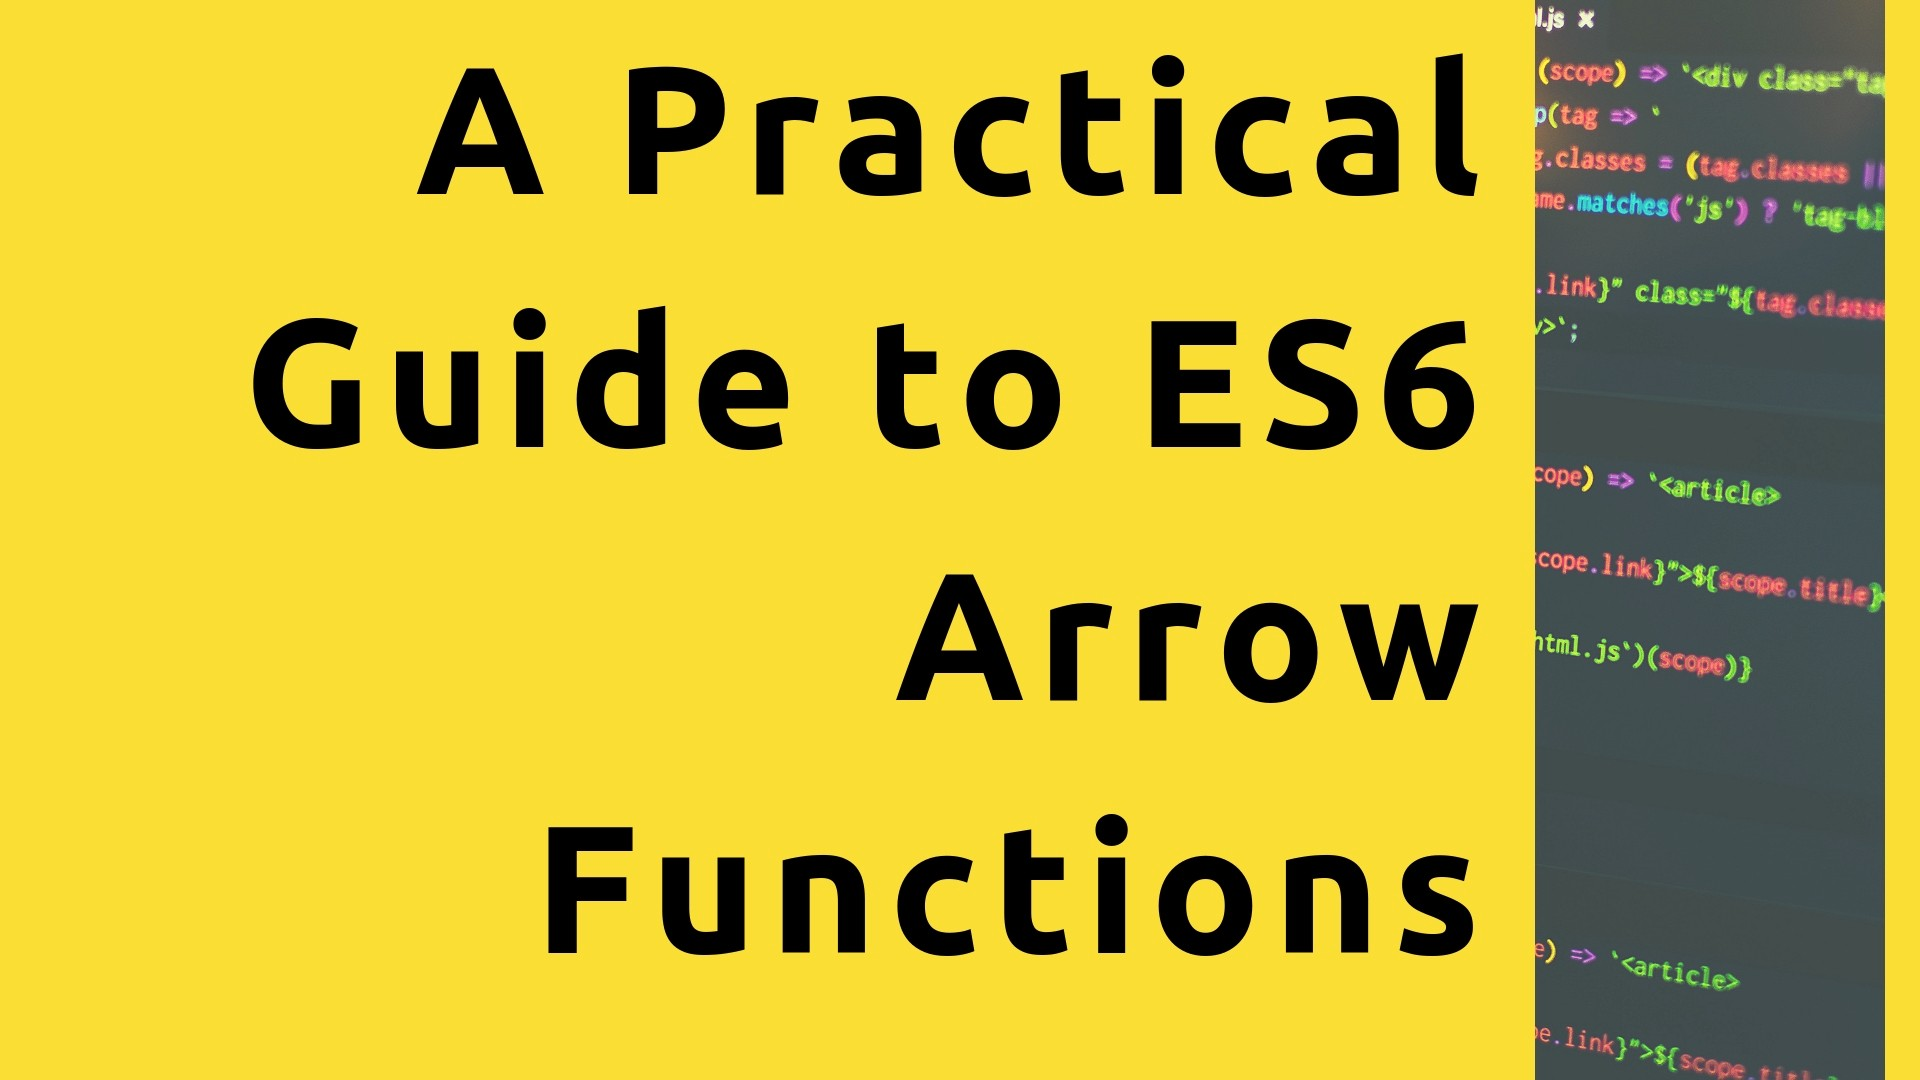 A Practical Guide to ES6 Arrow Functions - Bits and Pieces